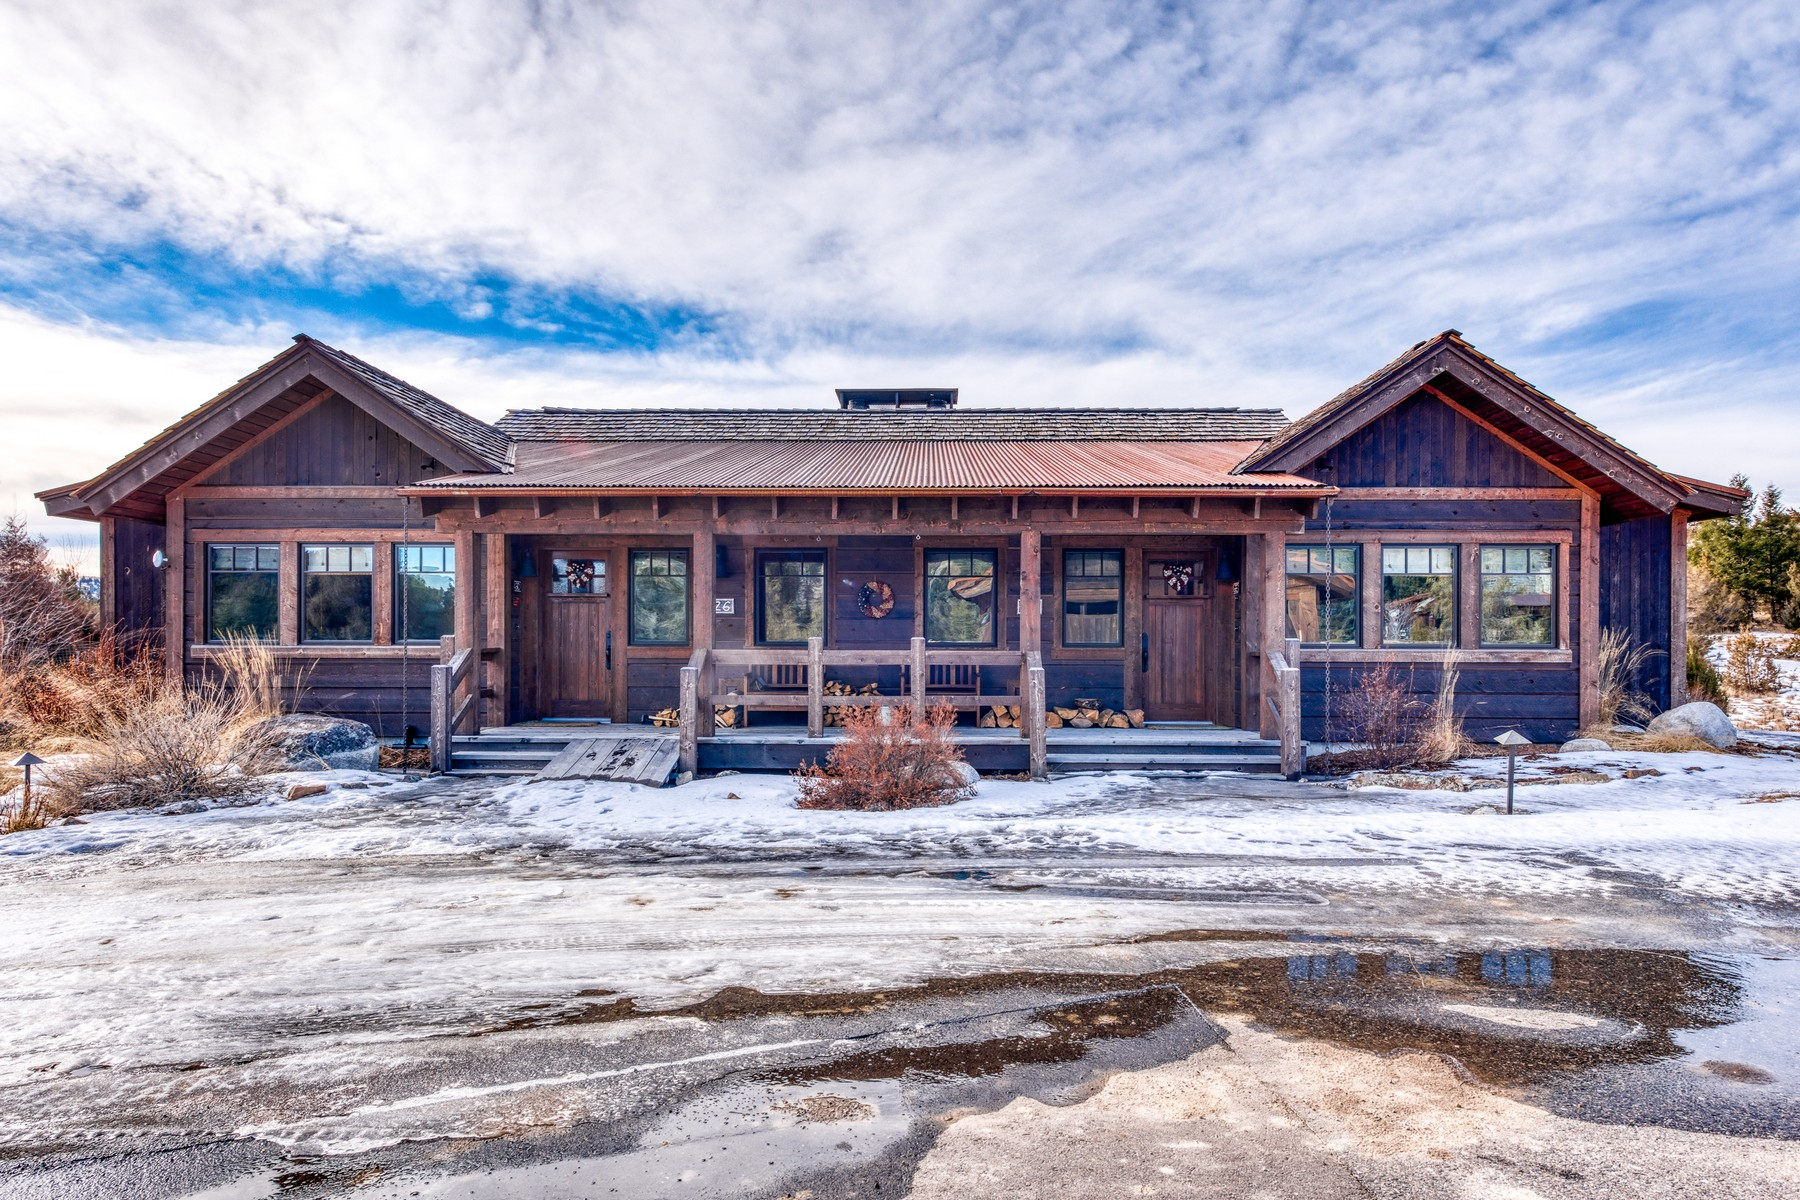 townhouses for Sale at Rock Creek Cattle Company Townhome 26 (28) Sage Court Deer Lodge, Montana 59722 United States